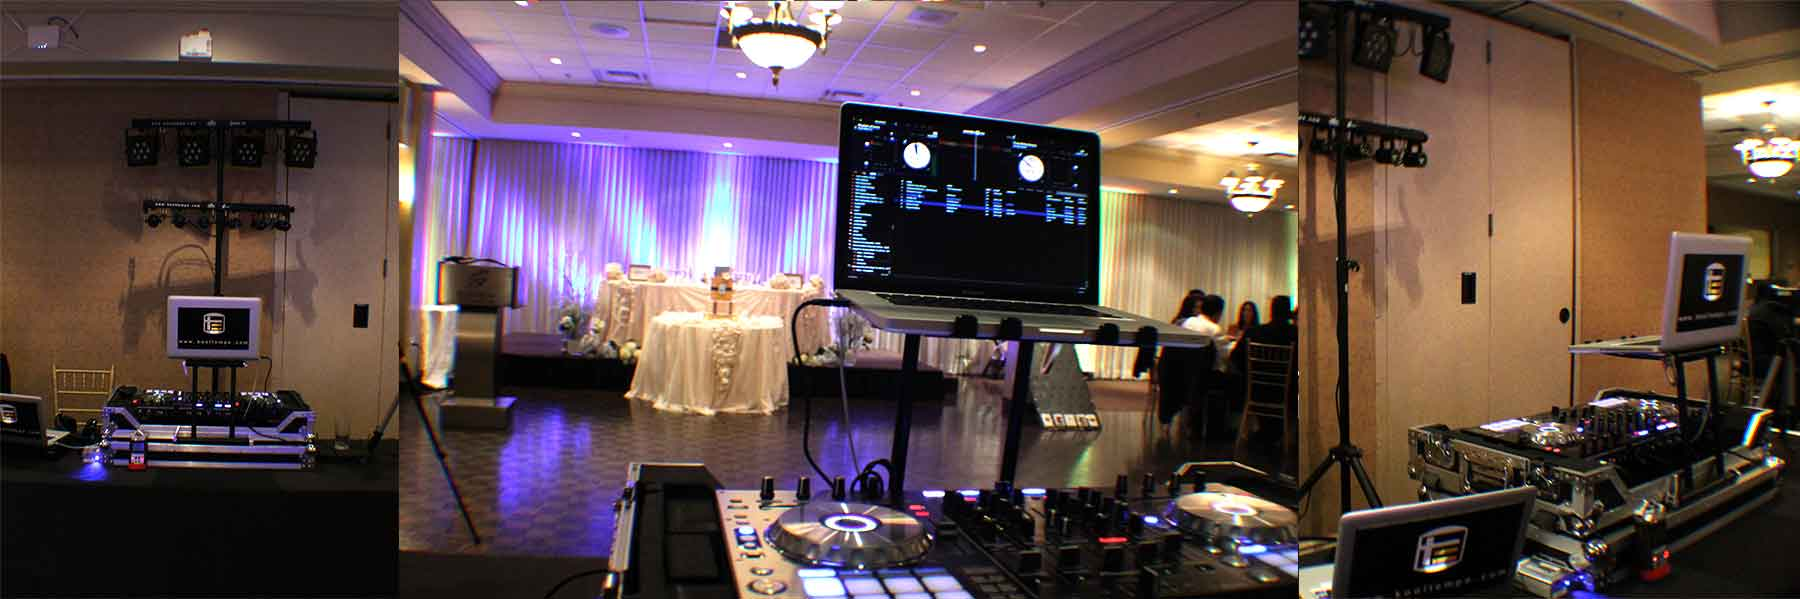 Wedding-DJ-Set-up-&-Uplighting-at-Bayview-Golf-&-Country-Club-Toronto